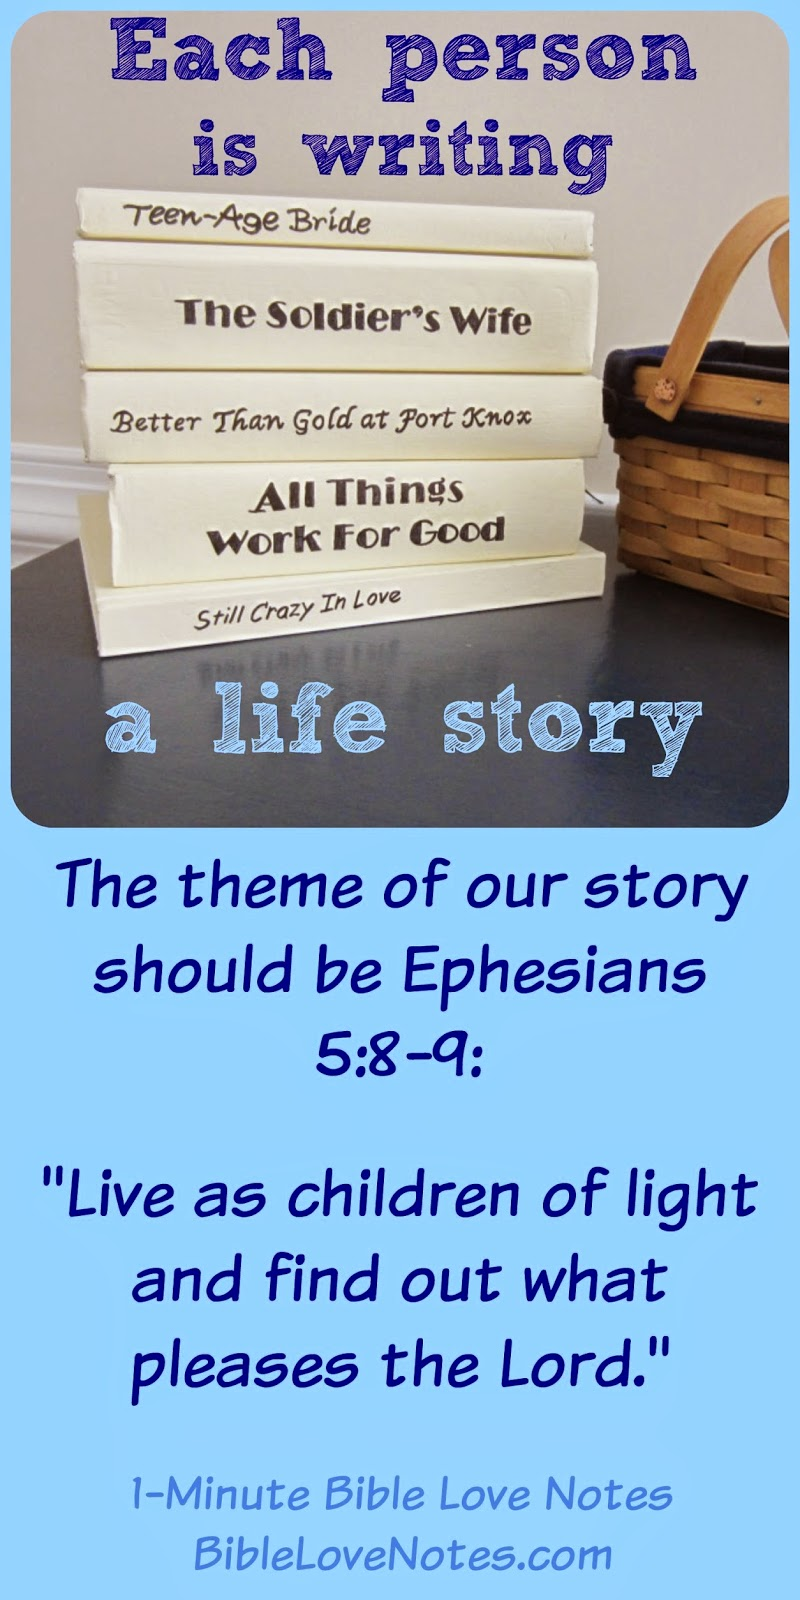 Ephesians 5:8-9, pleasing the Lord, writing our story,